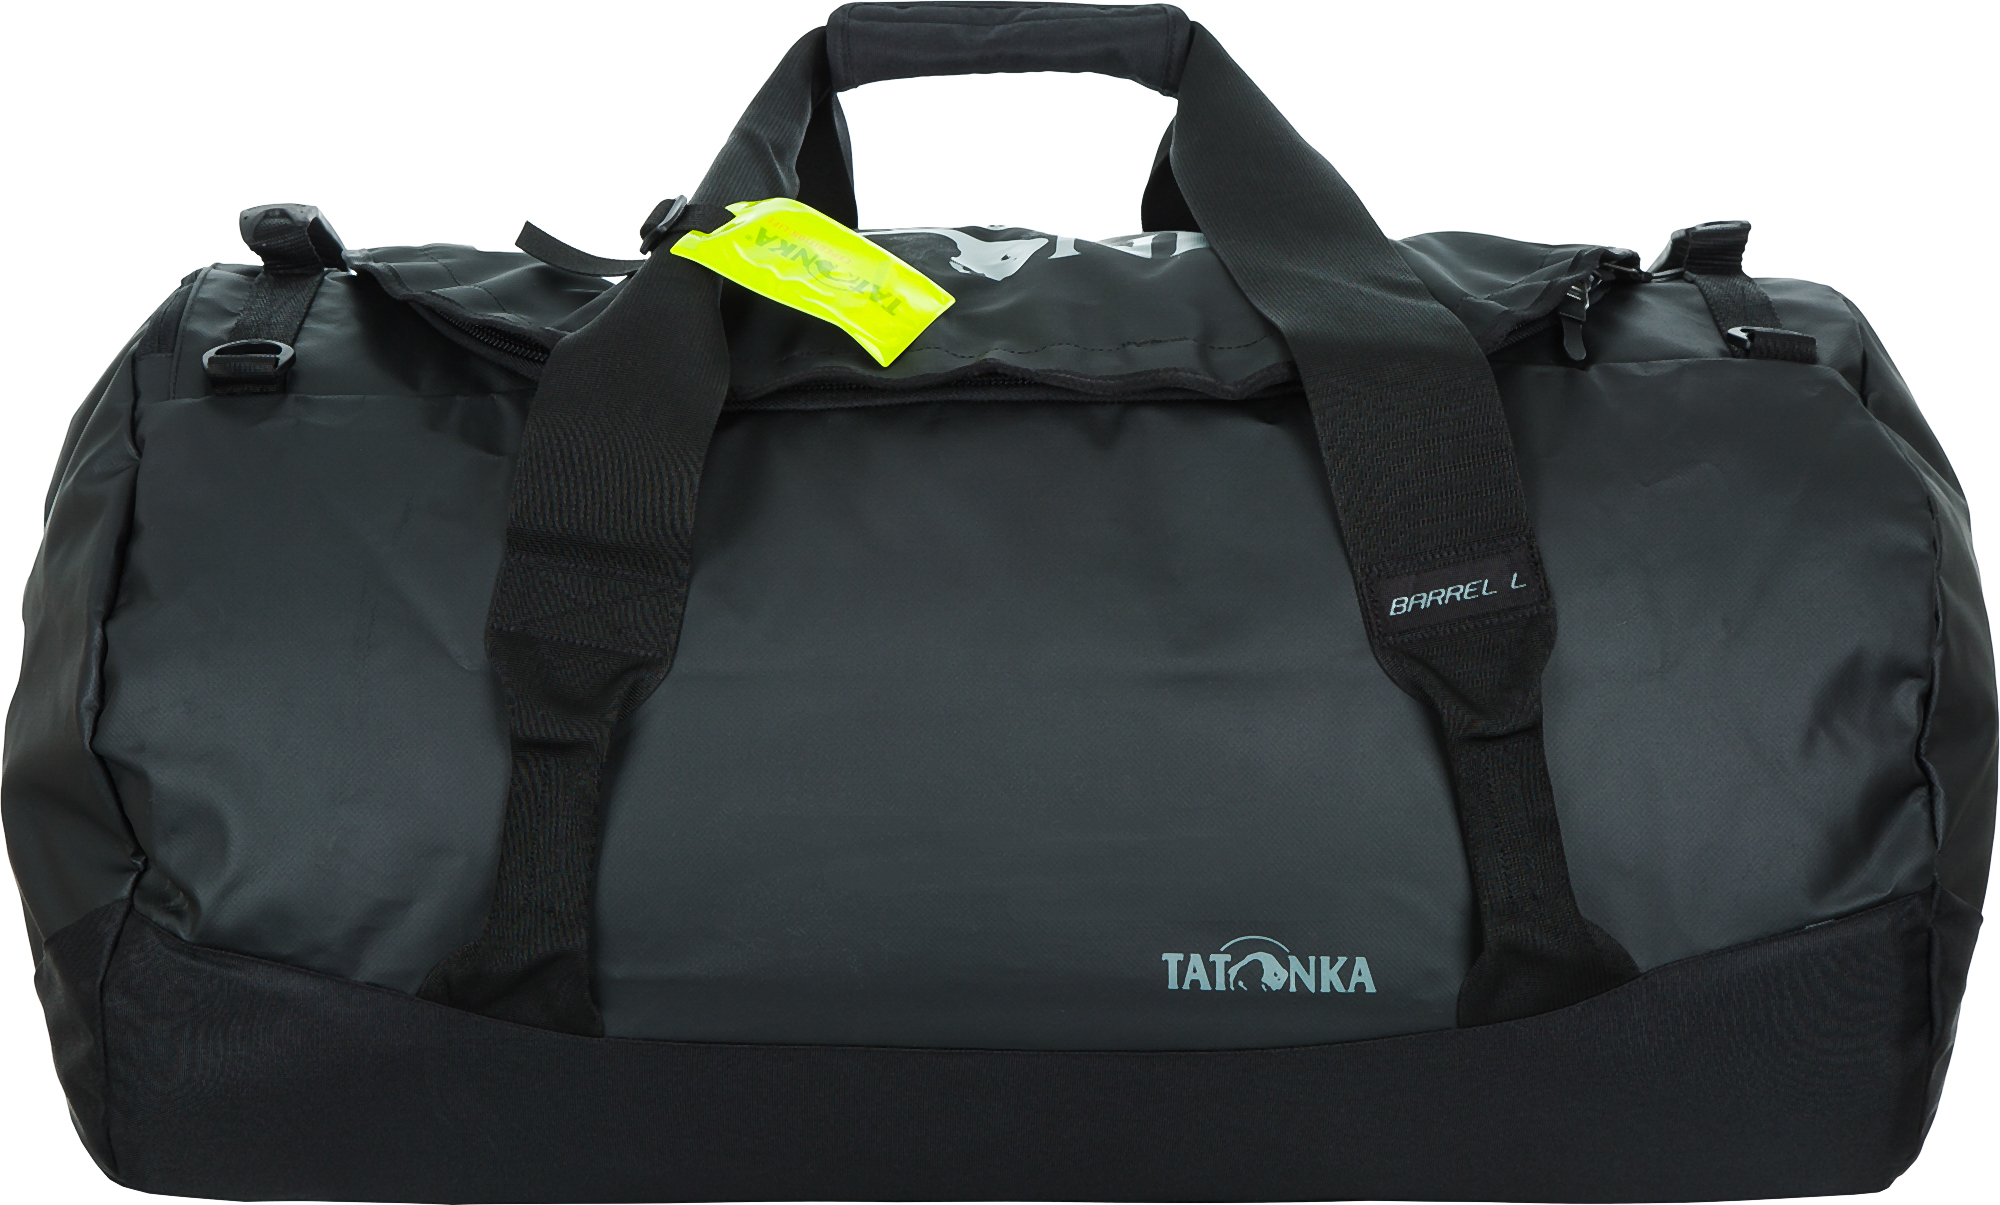 Tatonka Сумка Tatonka BARREL XL 110 л цена 2017